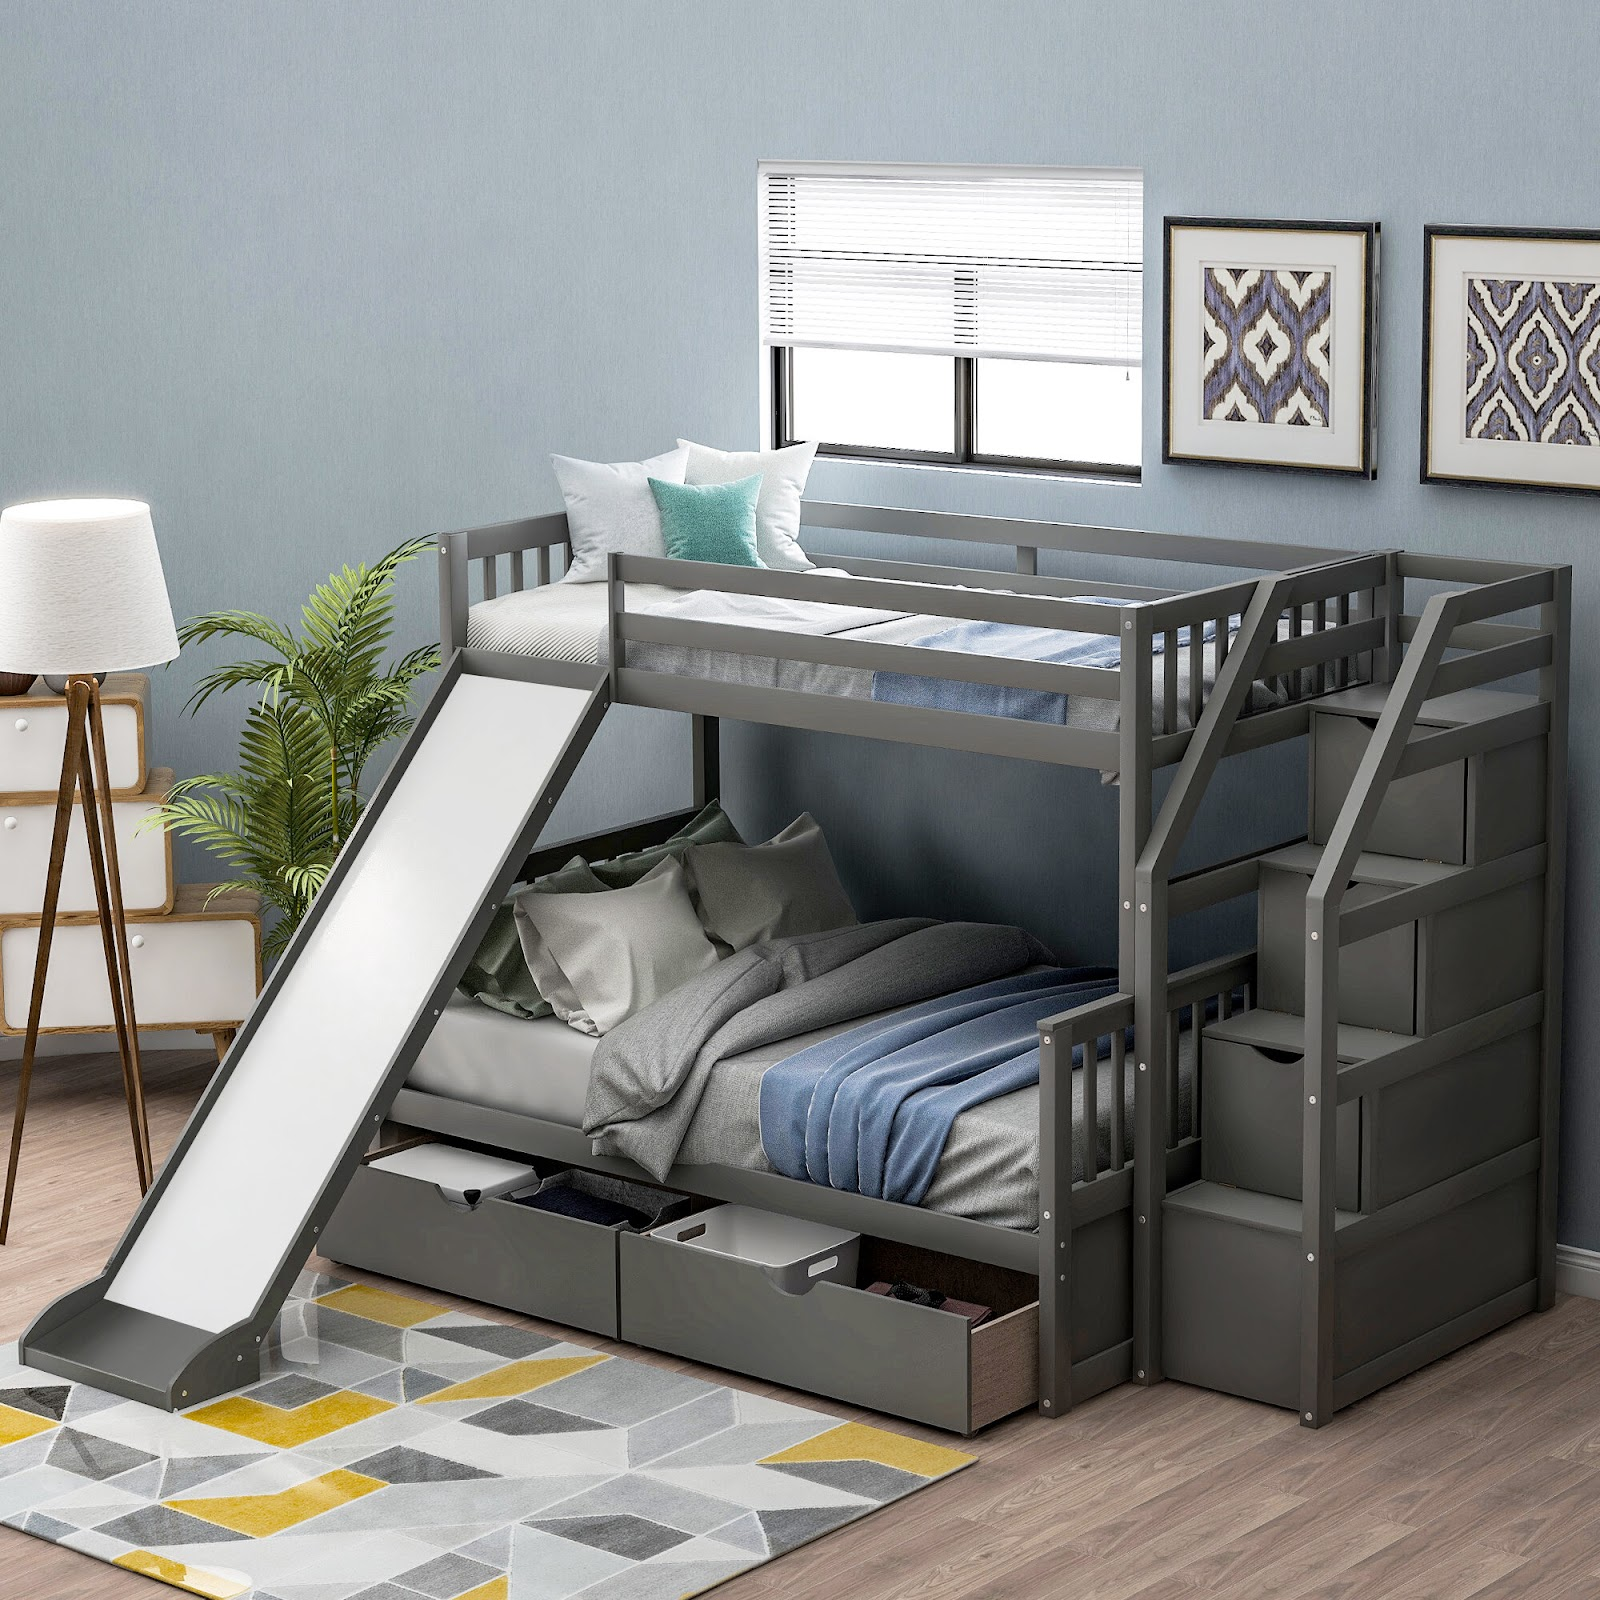 A Special Bed With A Slide Boy Bedroom Ideas